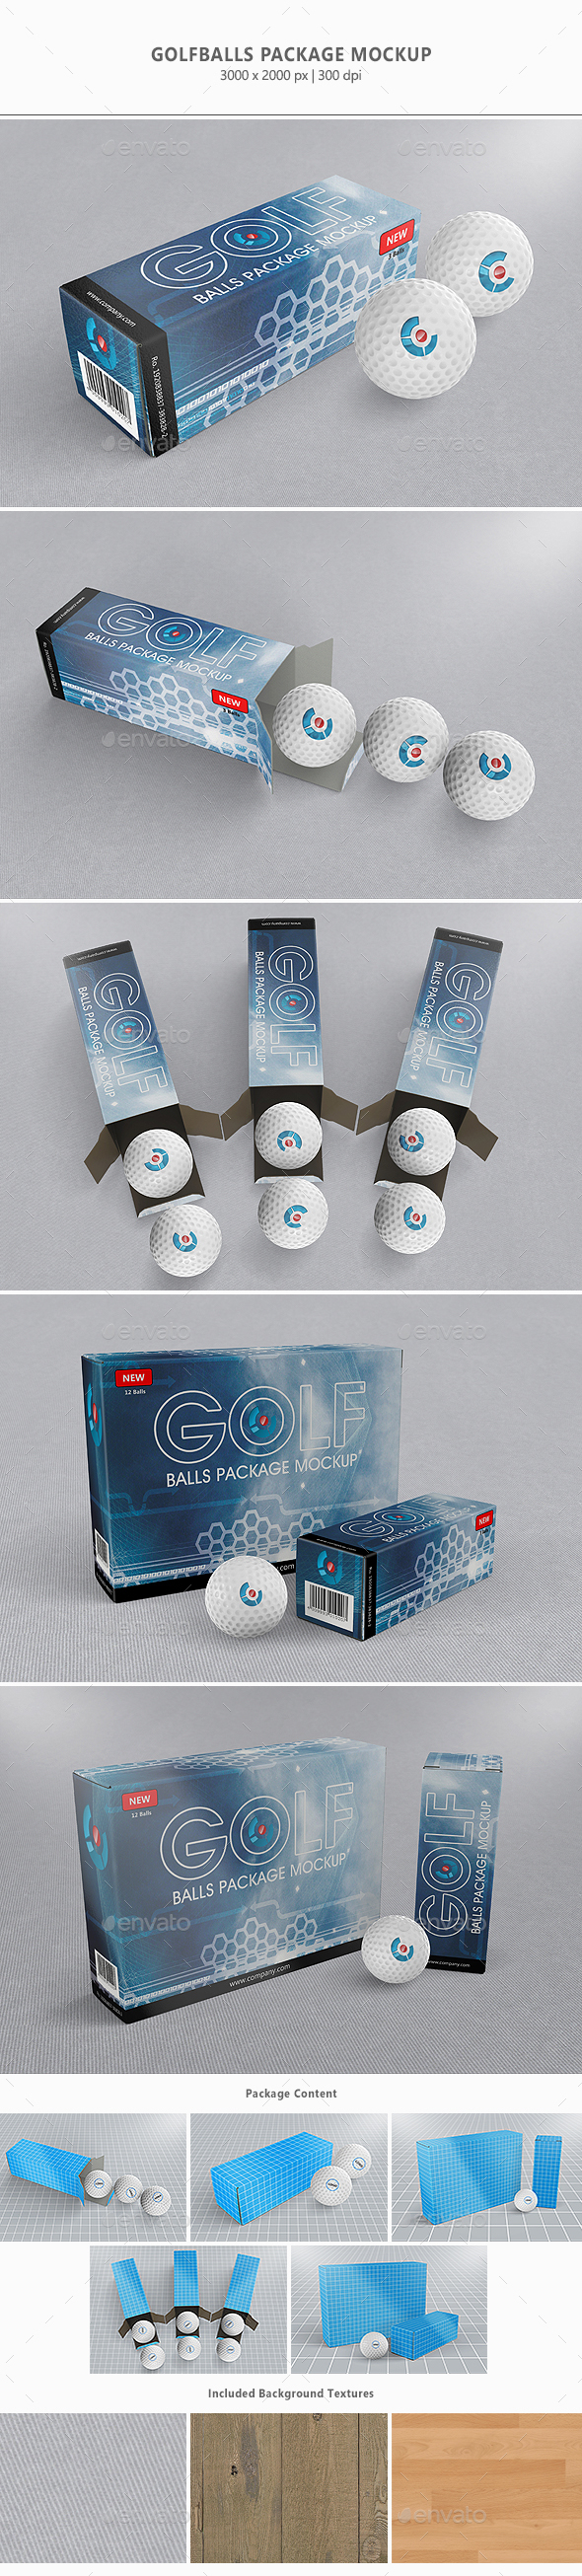 Golfballs Package Mock-up - Packaging Product Mock-Ups